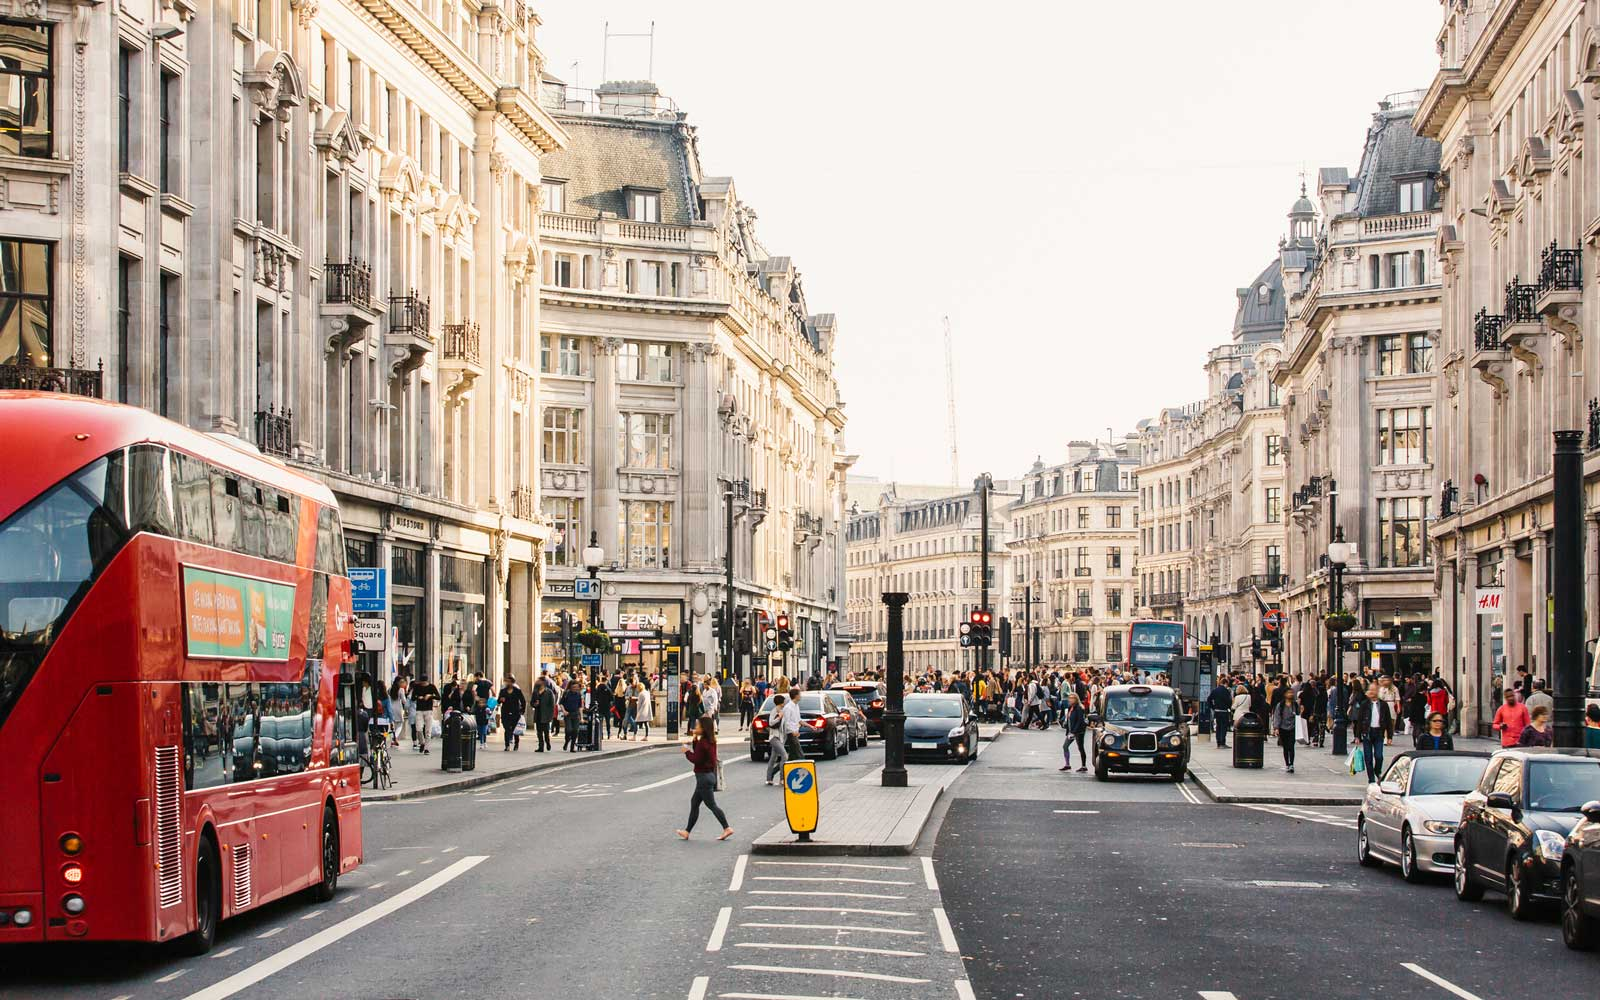 Busy day on Regent street with crowds of people and cars, London, England, UK